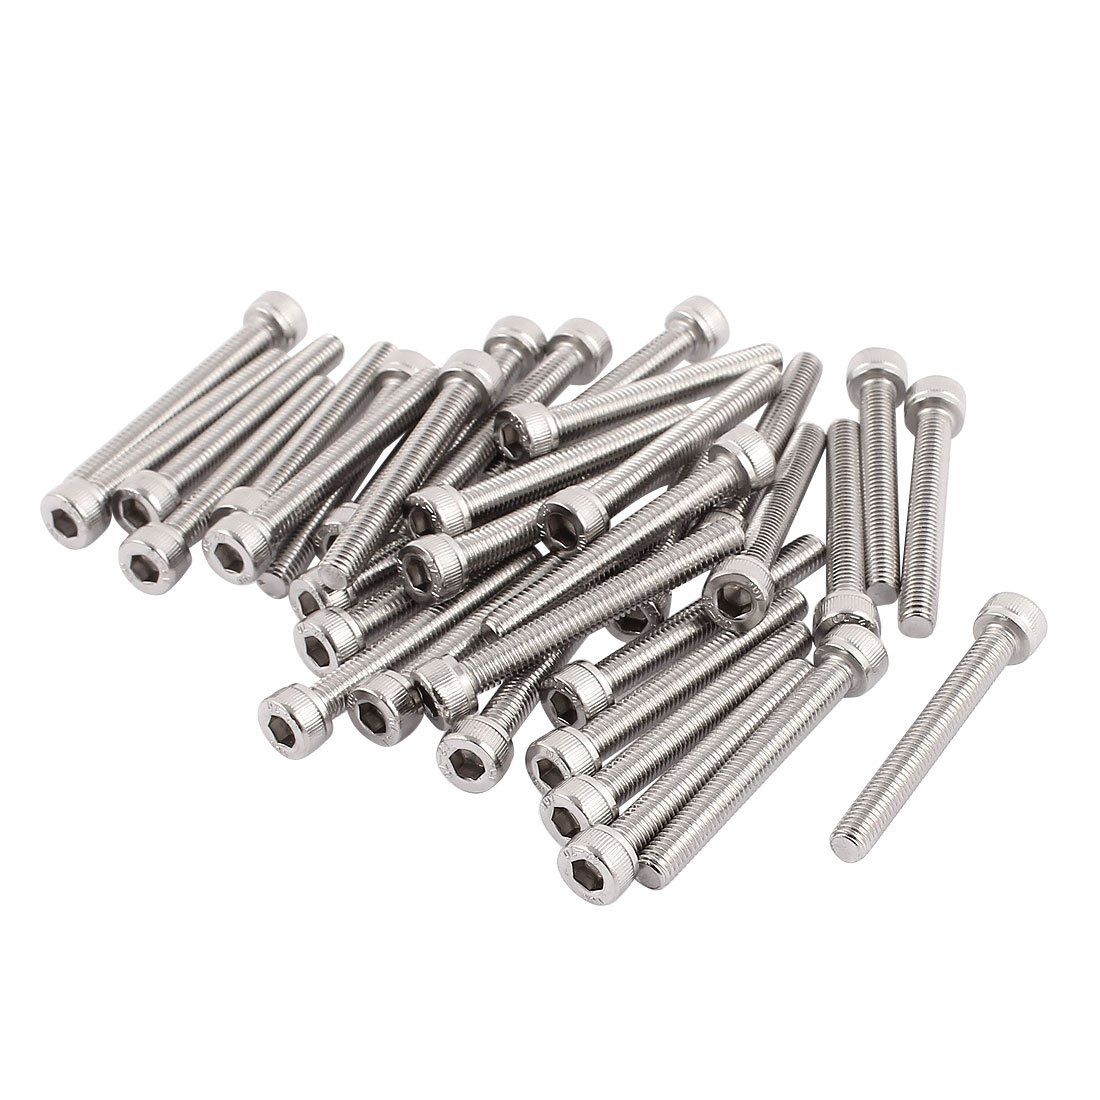 uxcell M3x25mm Thread 304 Stainless Steel Hex Socket Head Cap Screw Bolt DIN912 55pcs